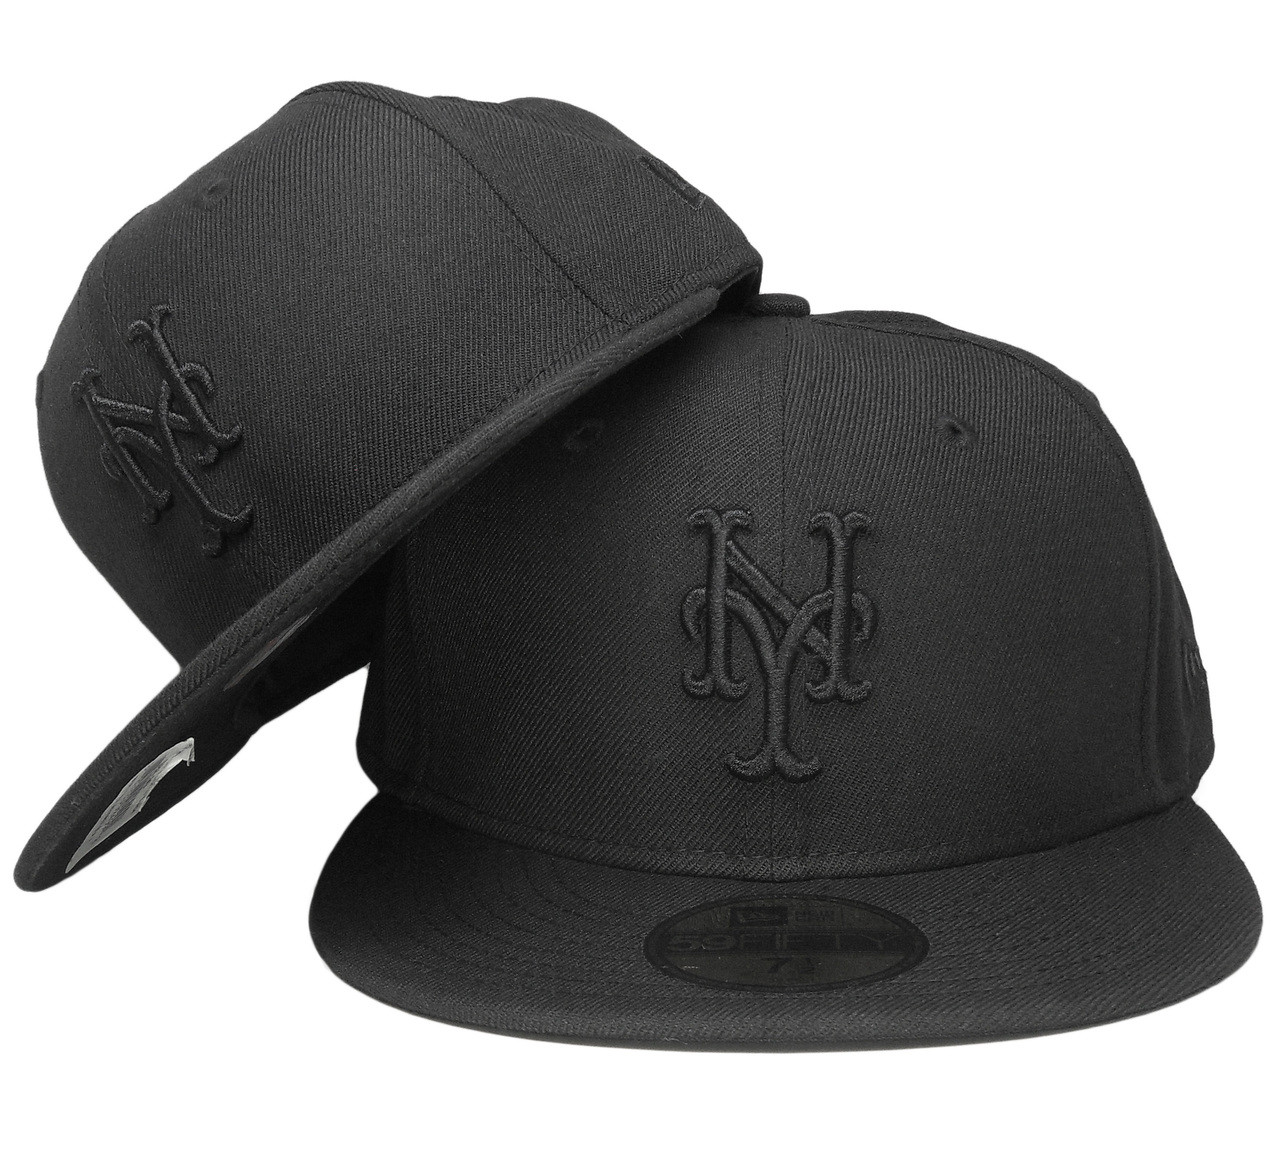 c9227f1b493 New York Mets New Era All Black 59Fifty Fitted Hat - Black ...